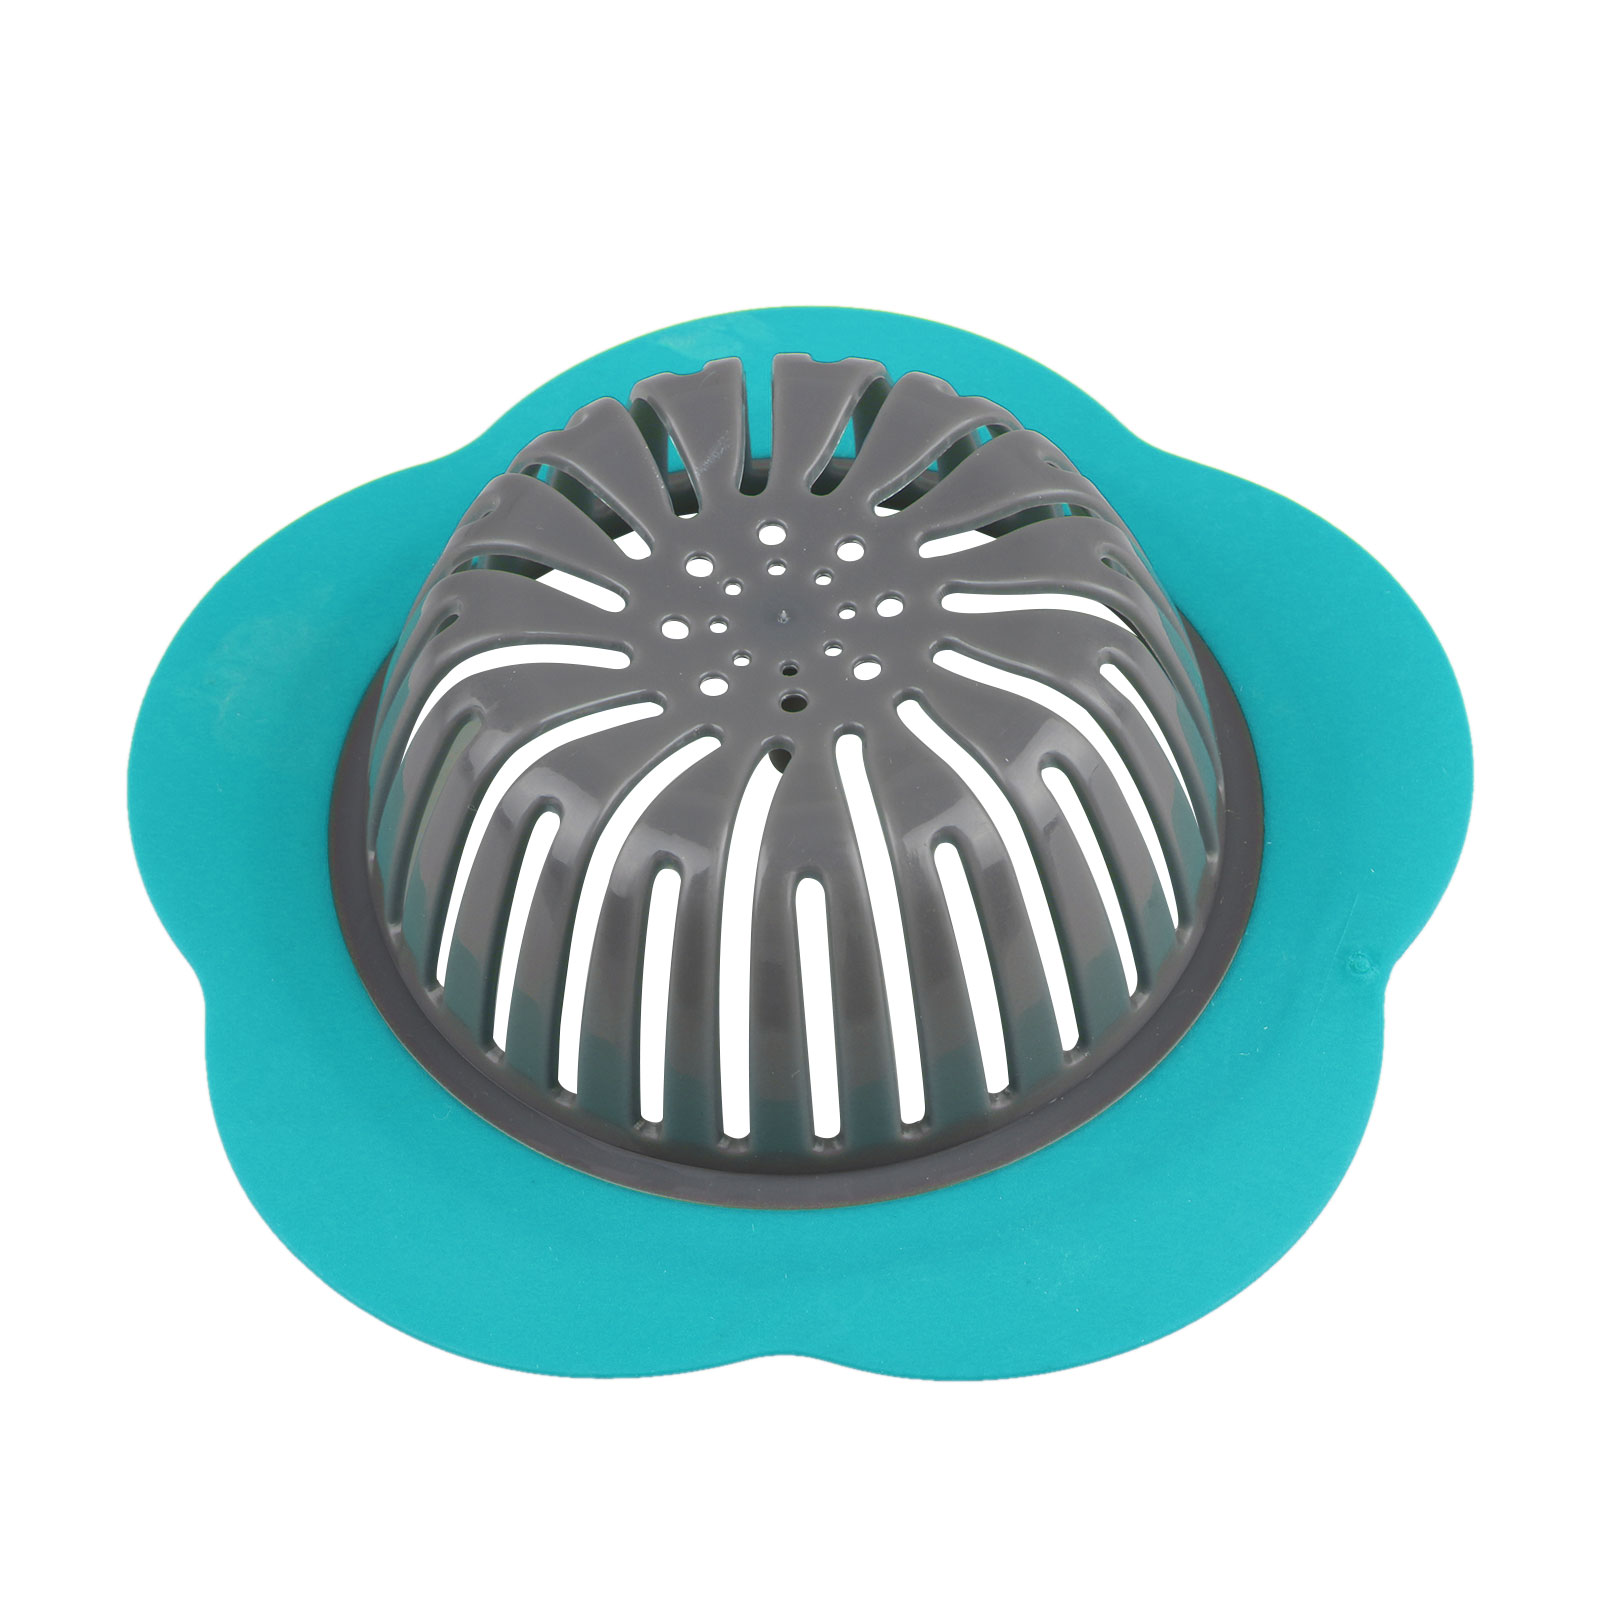 Flower Sink Strainer Kitchen Drain Sink Filter Bathroom Drainage Hair Trap Cover